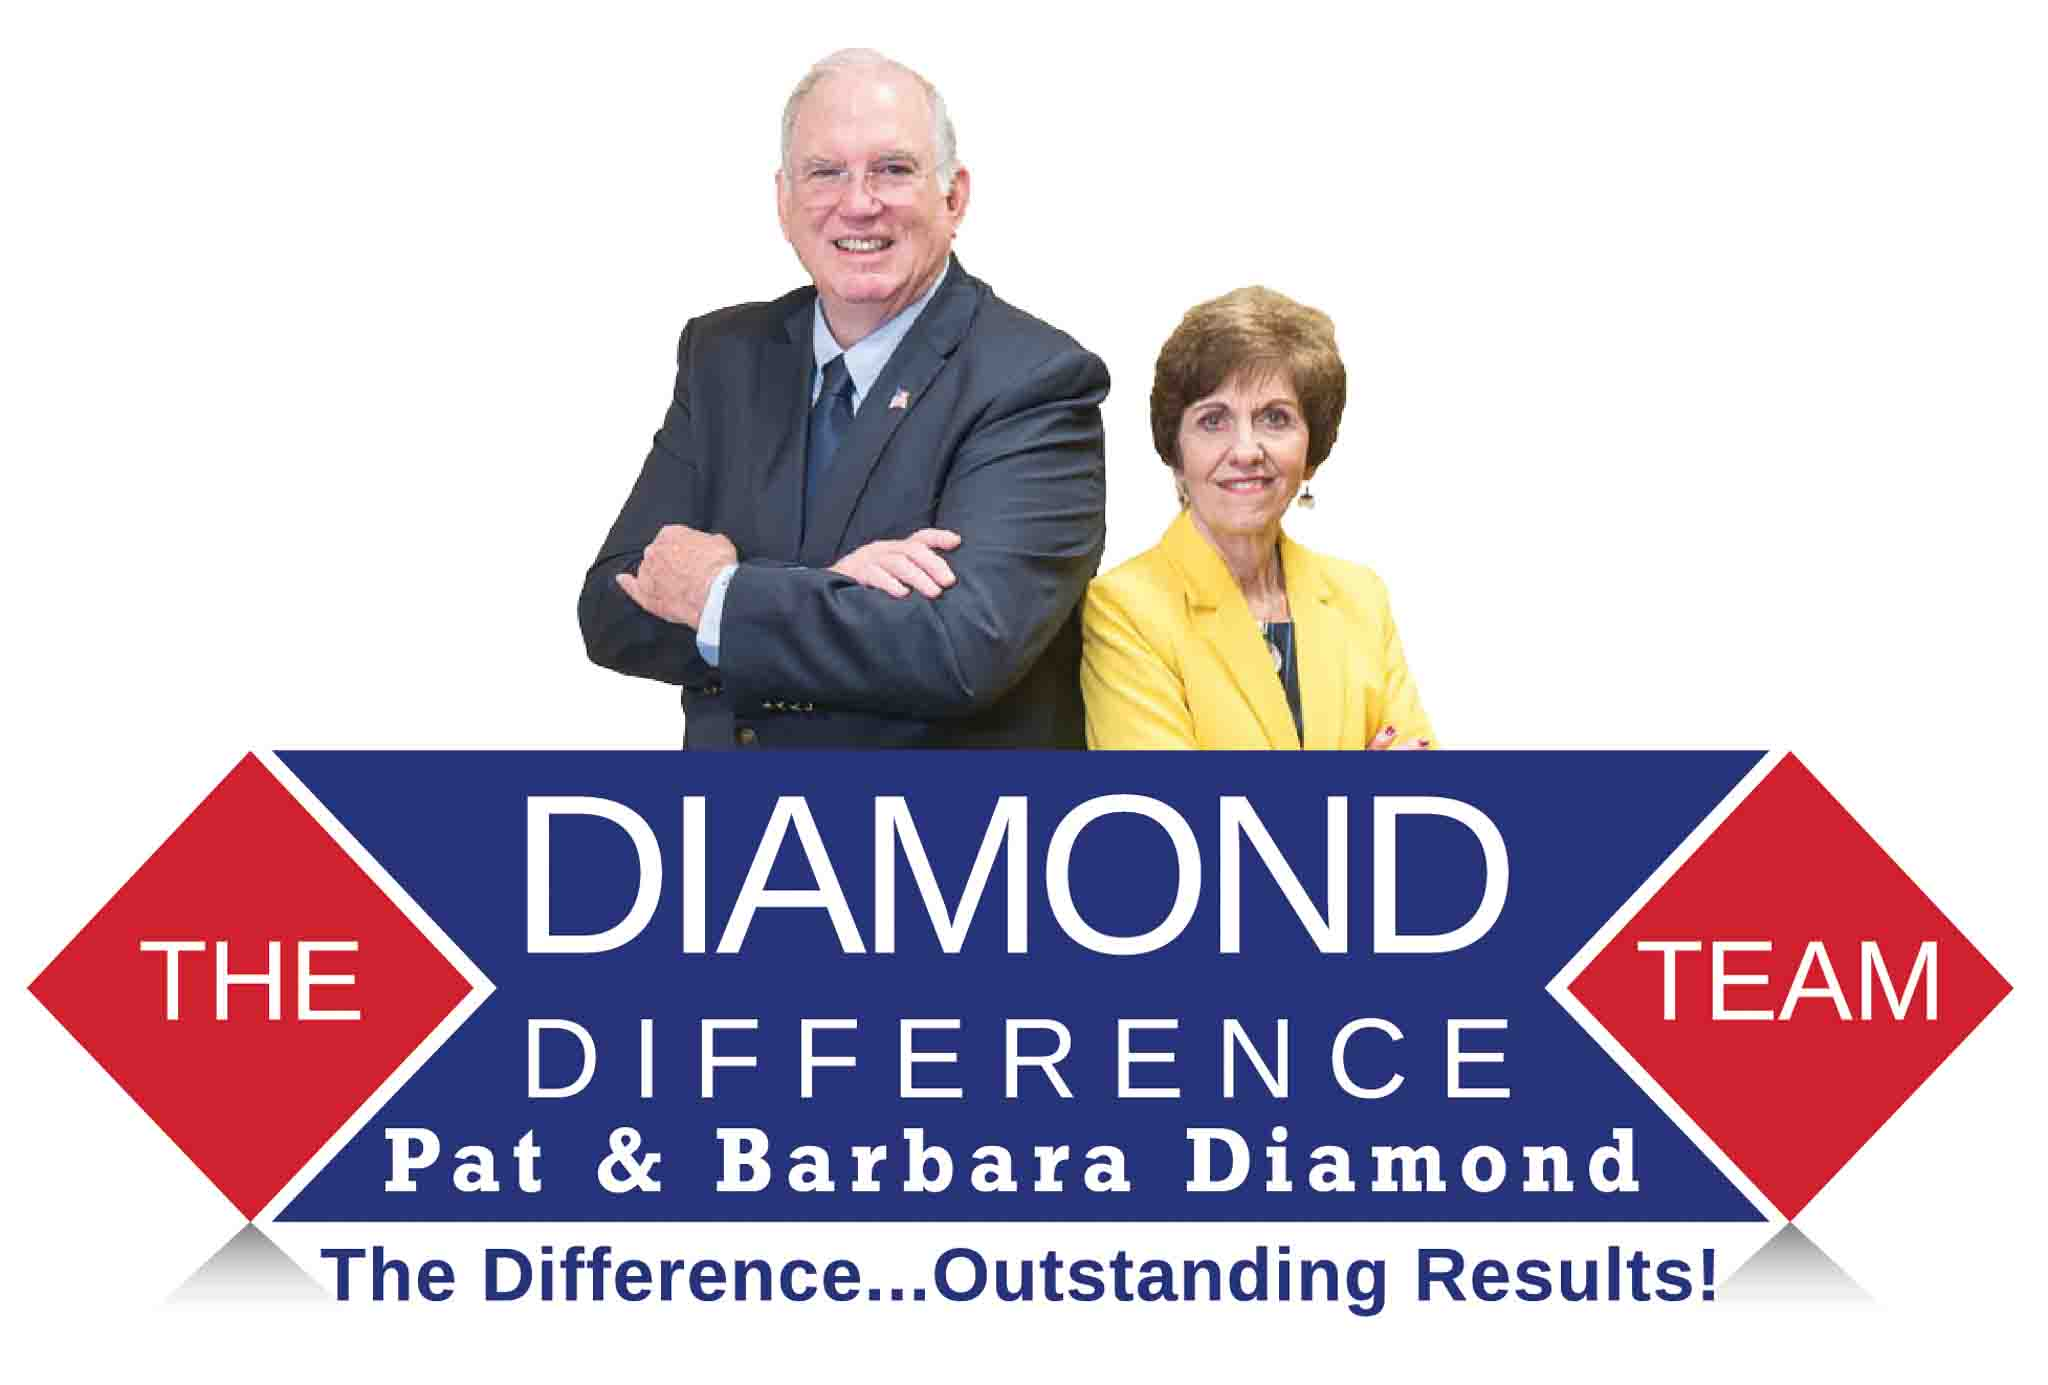 The Diamond Difference Team